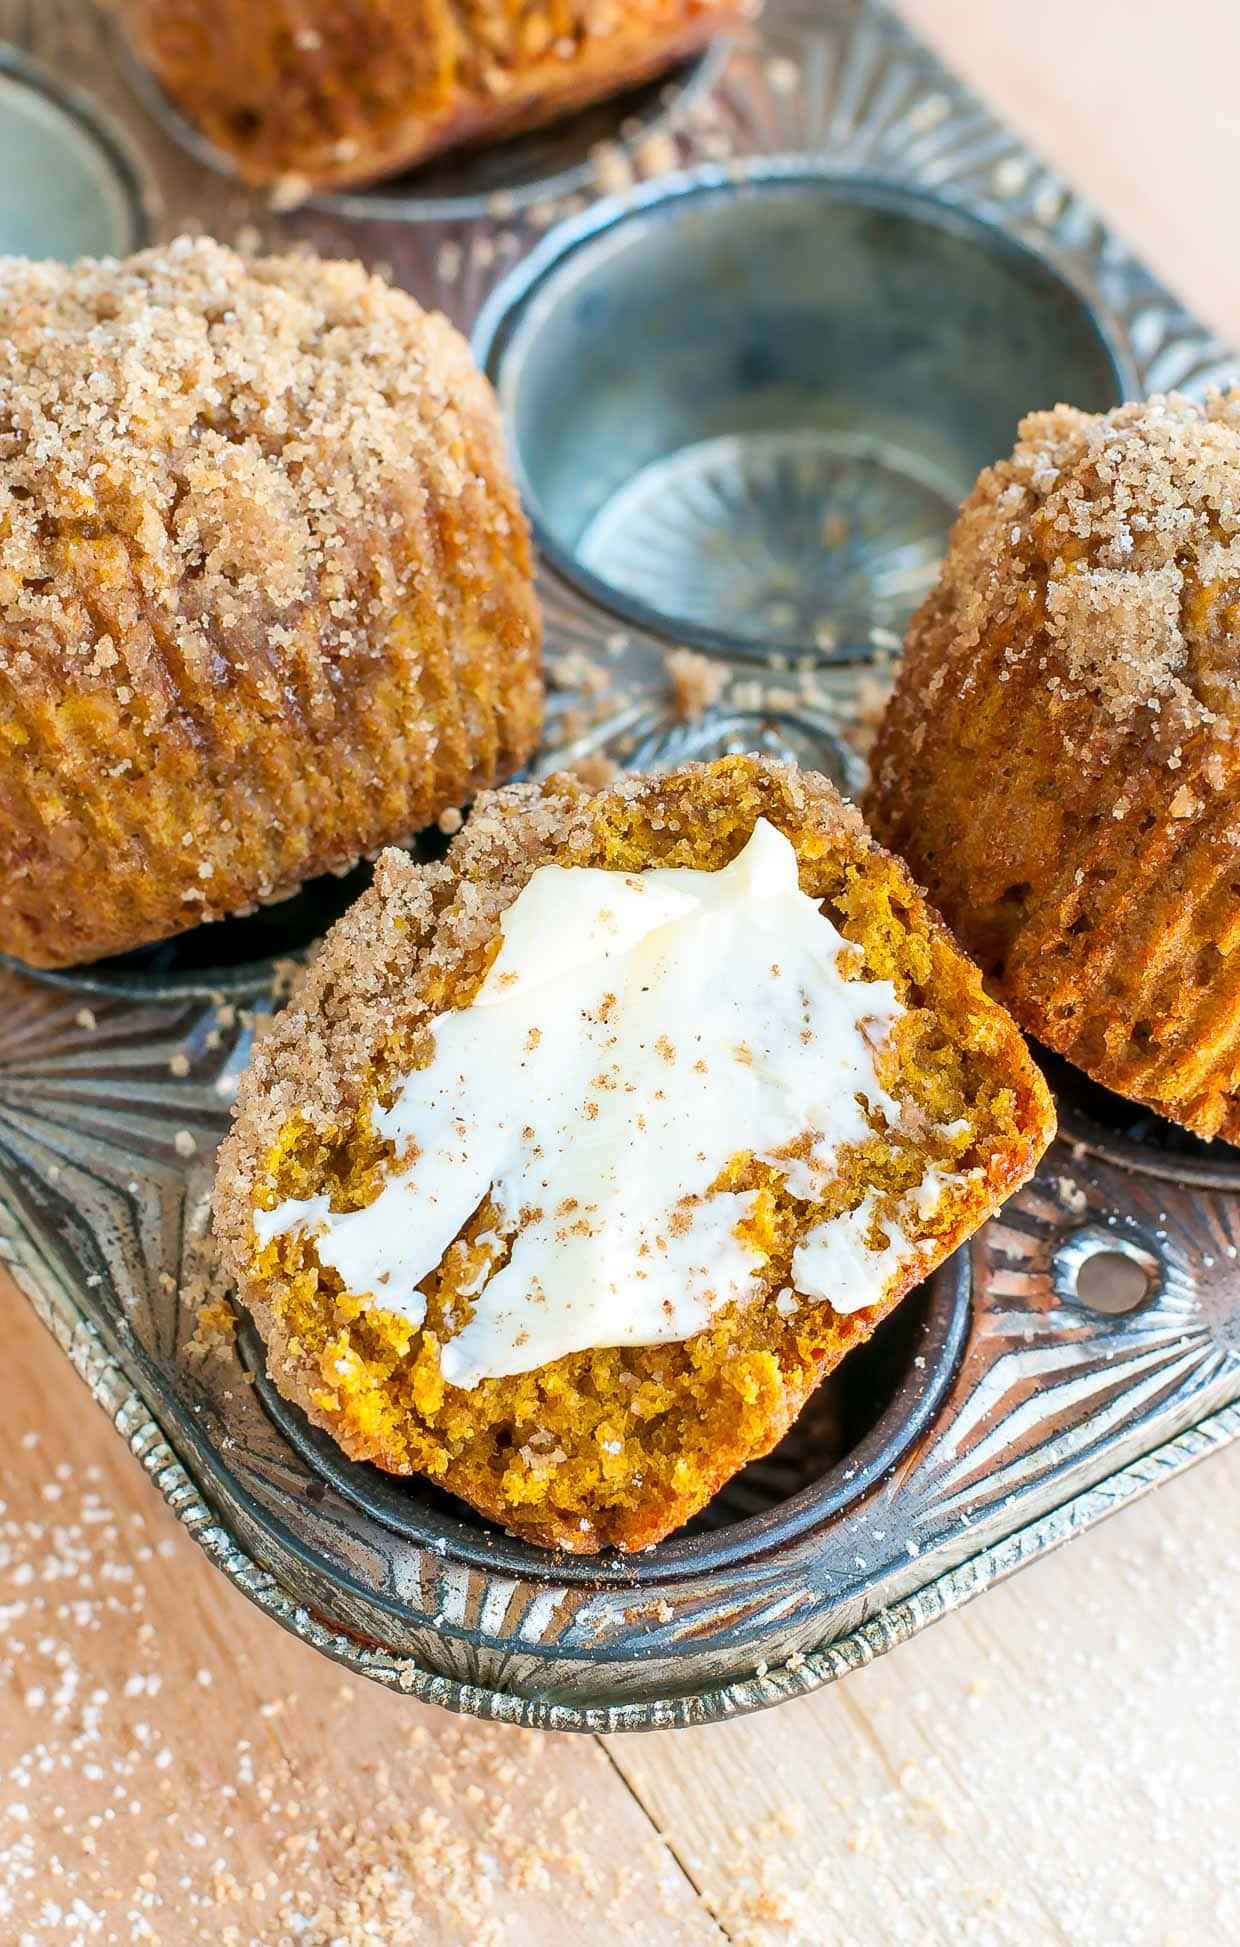 Cinnamon sugar pumpkin spice streusel muffins with butter spread.